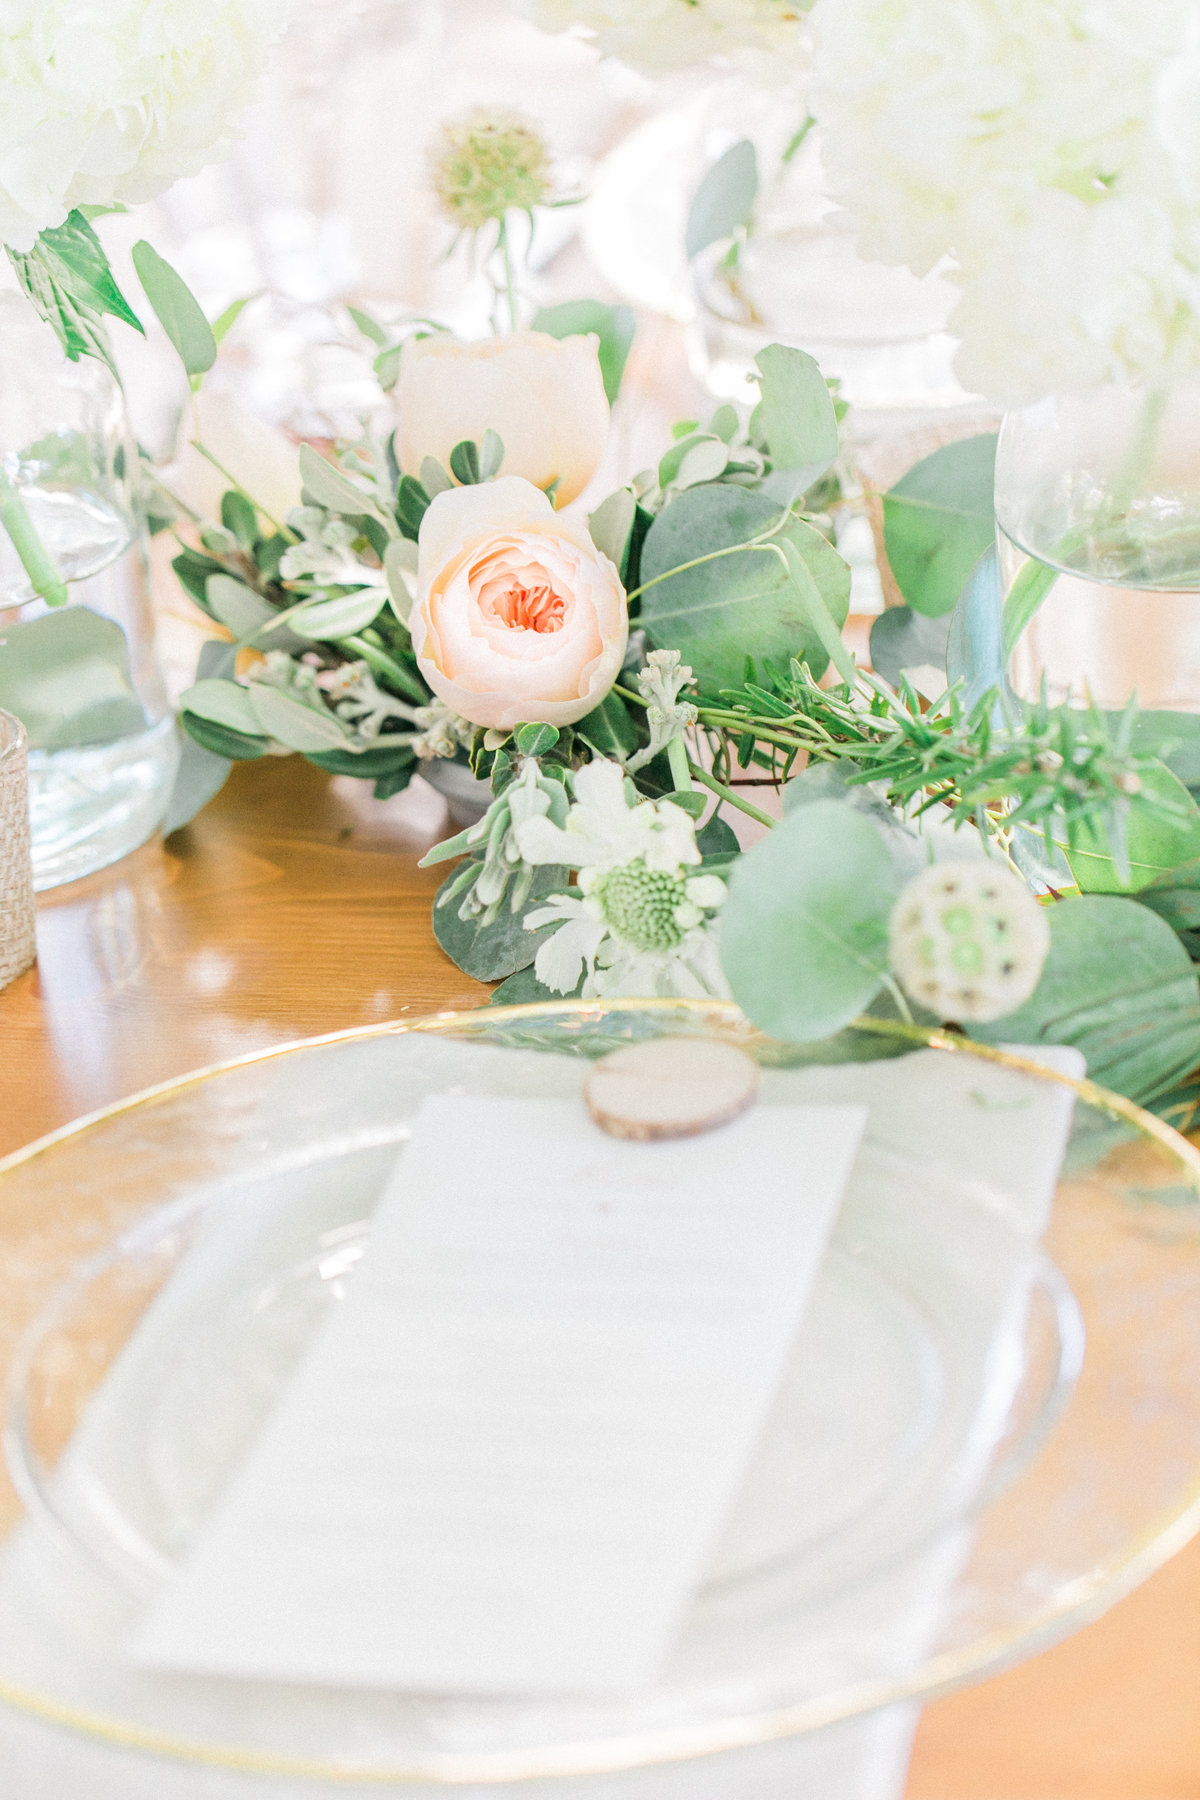 Blush and Ivory Wedding Reception Setting